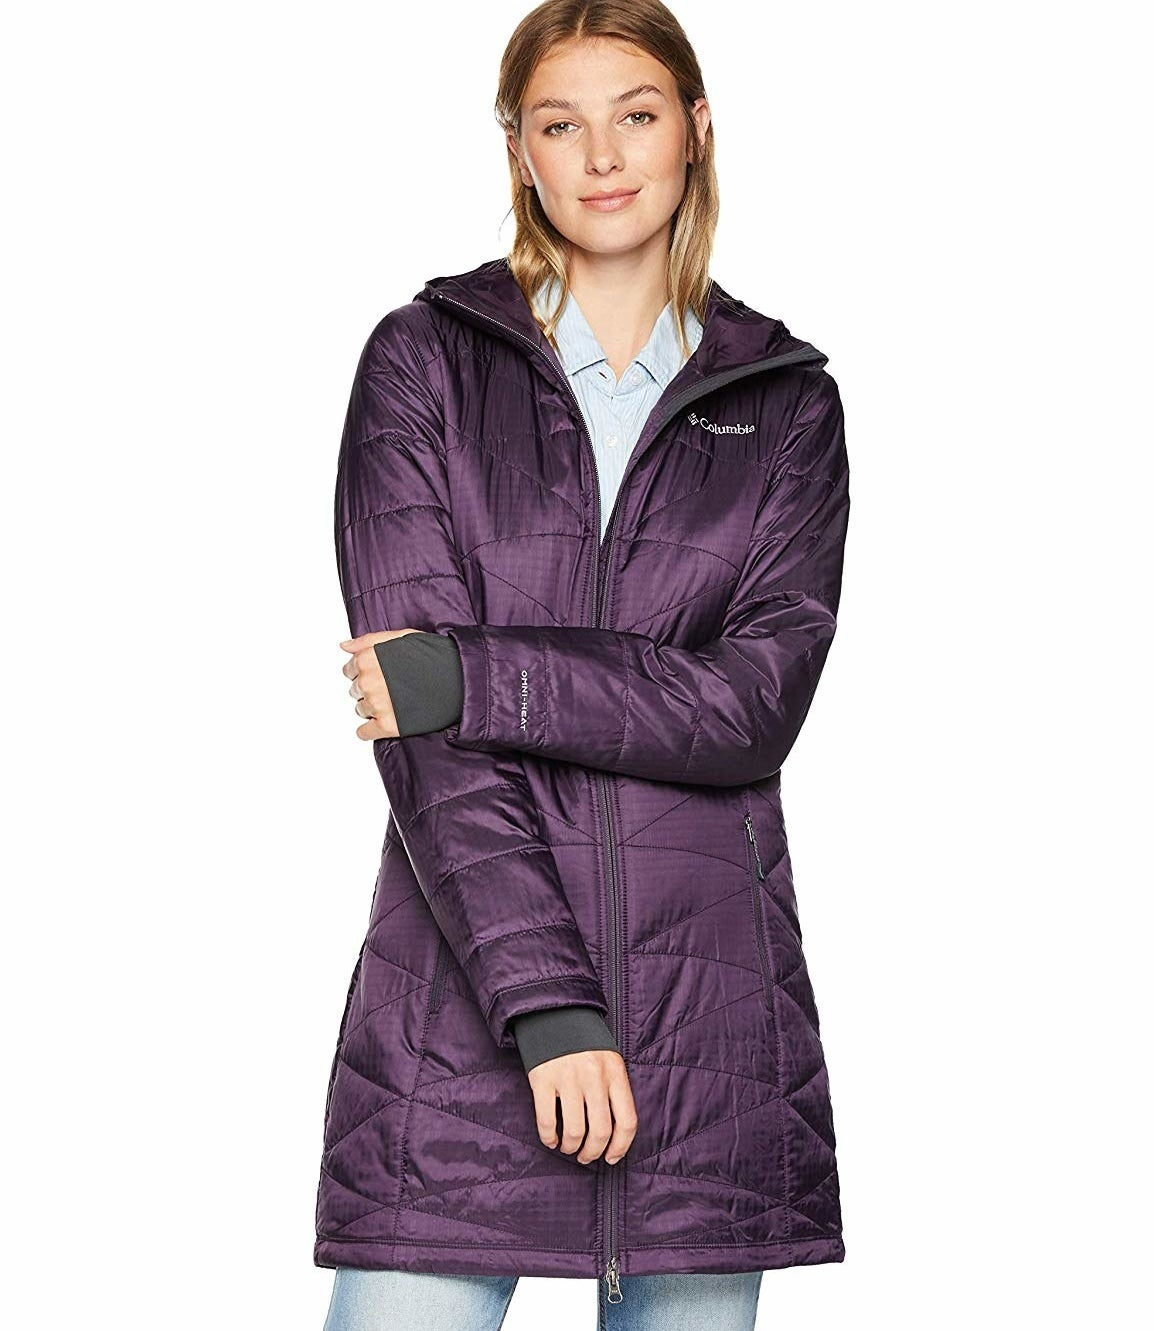 """Promising review: """"Okay ladies, if you're like me and hate the transition from your flip-flops and bathing suit to a winter coat and boots, this is the coat for you! I hate bulk and being all bundled up. This fits the bill, is extremely lightweight, has no bulk, and yet it's very warm. I LOVE THIS COAT. But remember, if you know Columbia products, they do run slightly on the smaller side. I normally wear a 2XL, and ordered a 3XL in this particular coat, and it fits perfectly with some room for a mid-weight sweater under it."""" —Lolita Price: $79.98+ (available in 12 styles, and sizes XS–3XL)"""